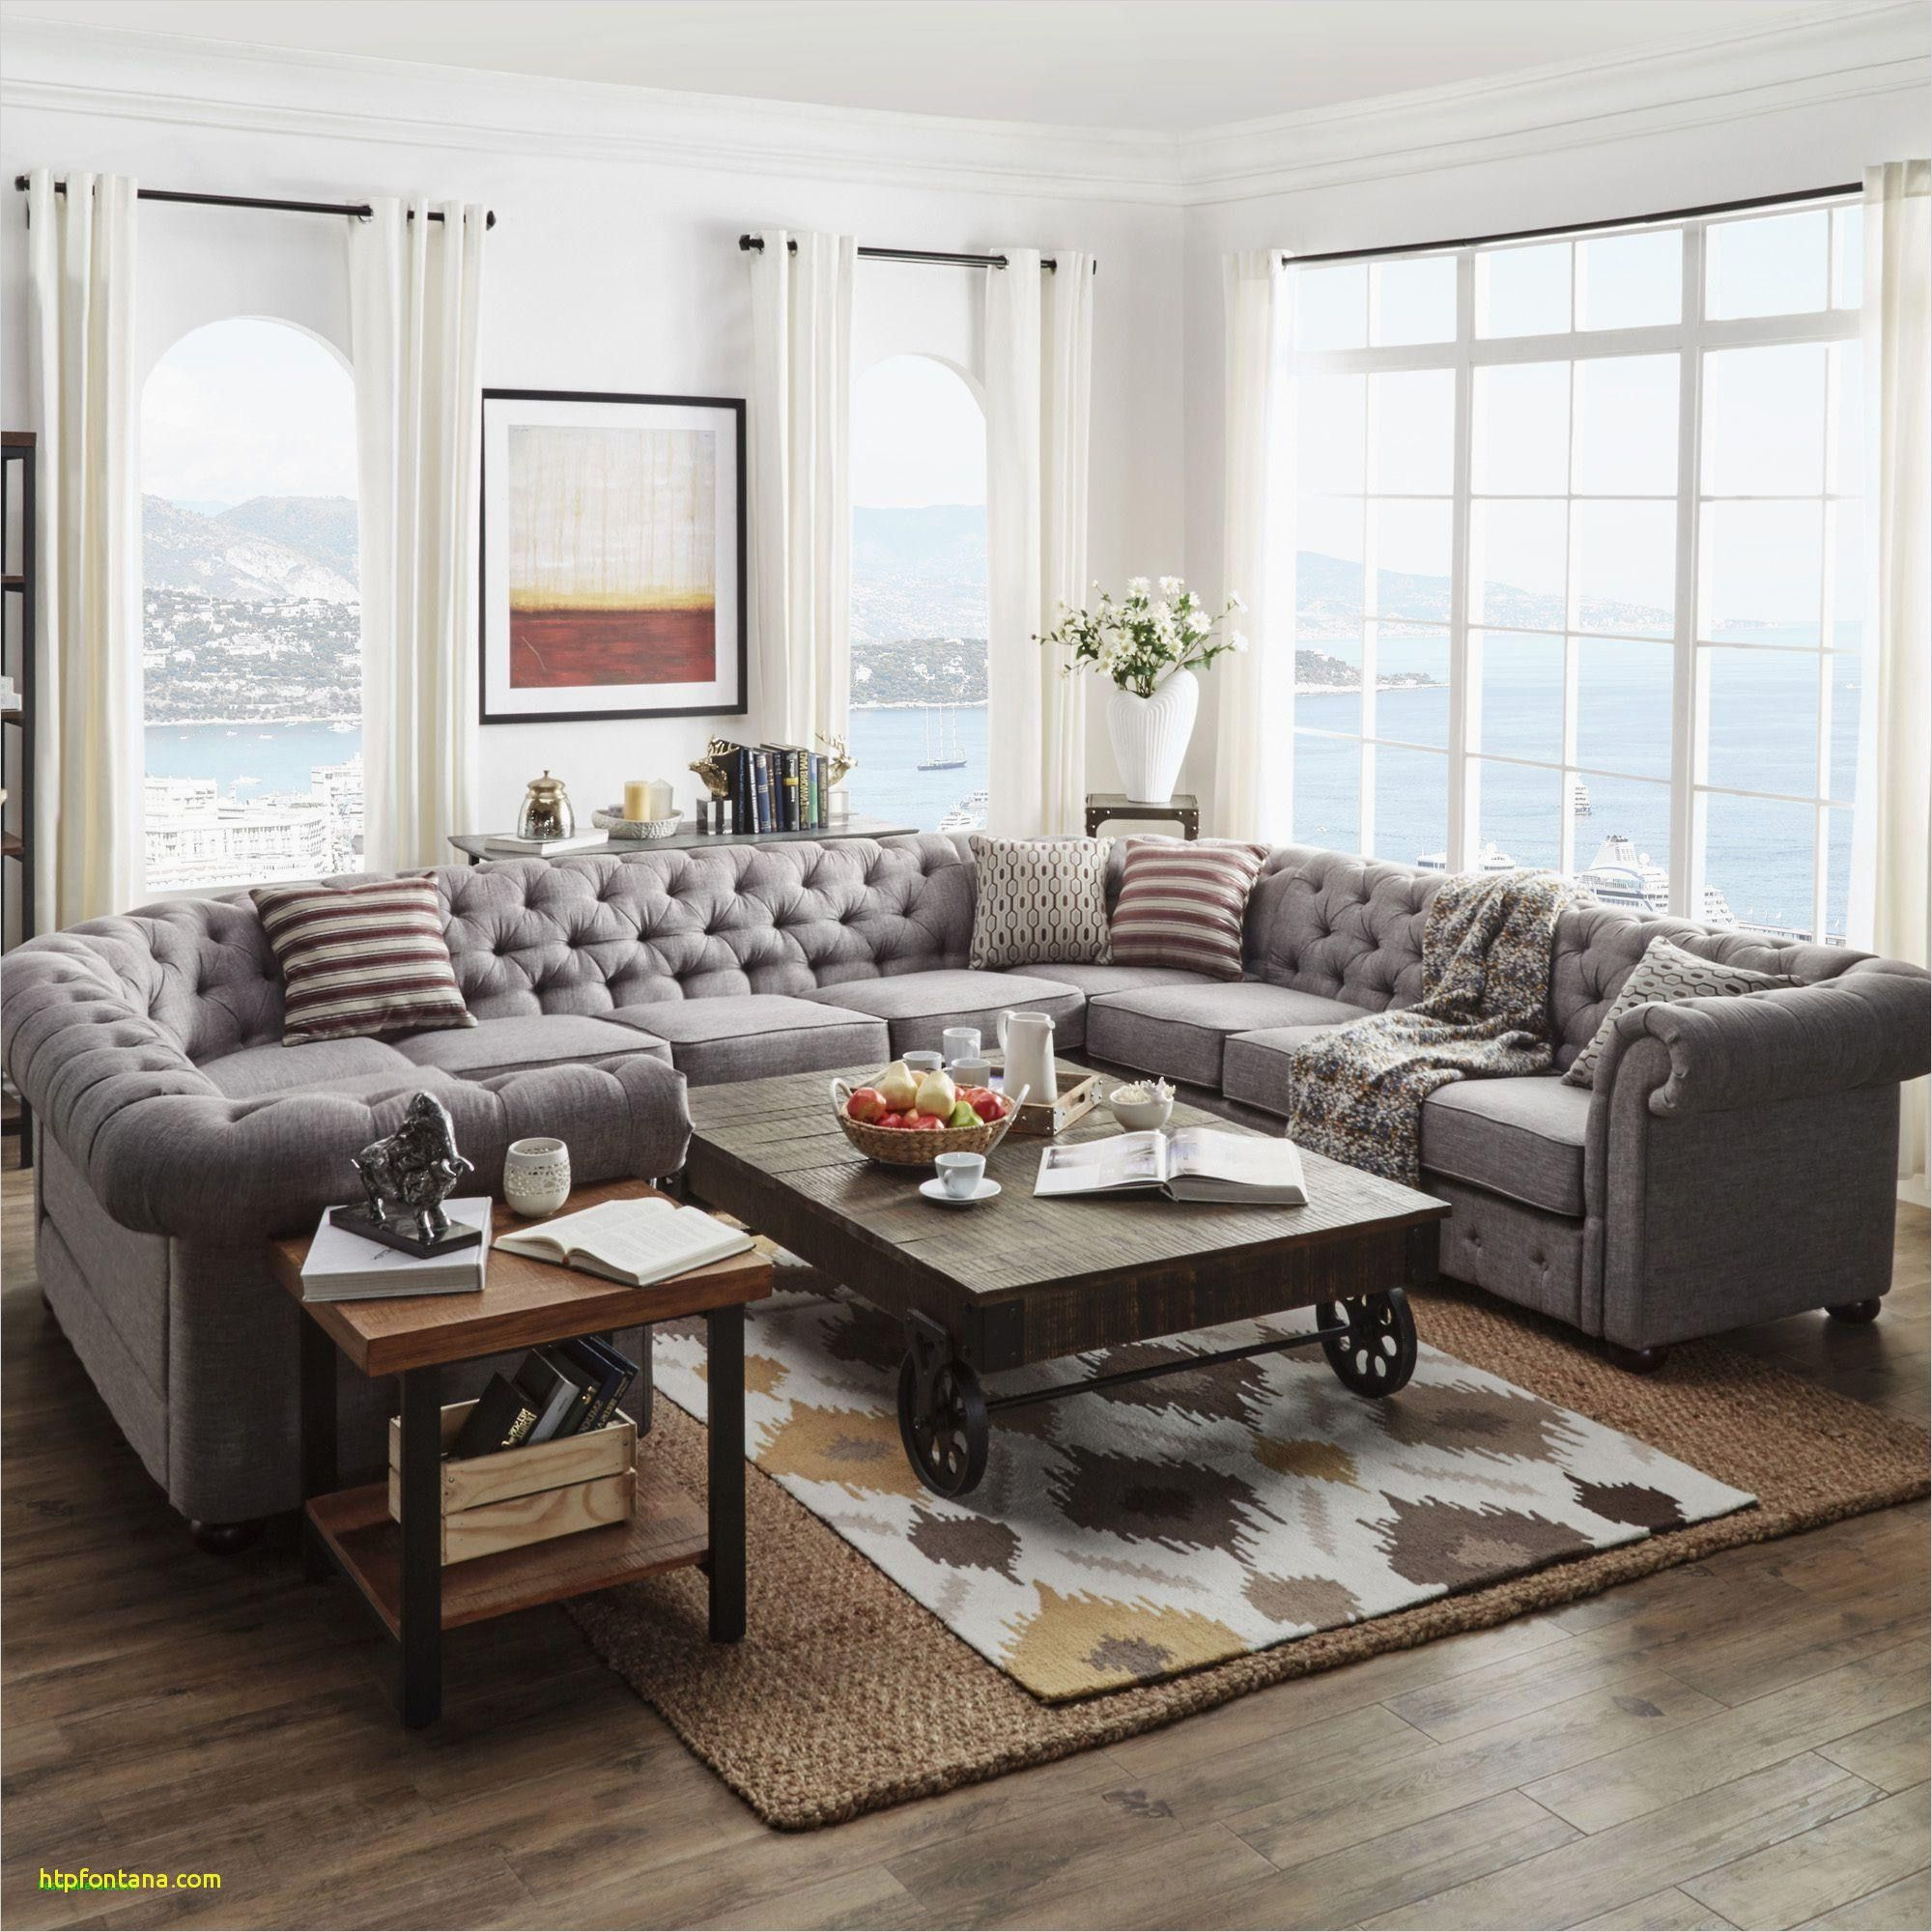 Rustic Living Room Ideas On A Budget Lovely Living Room